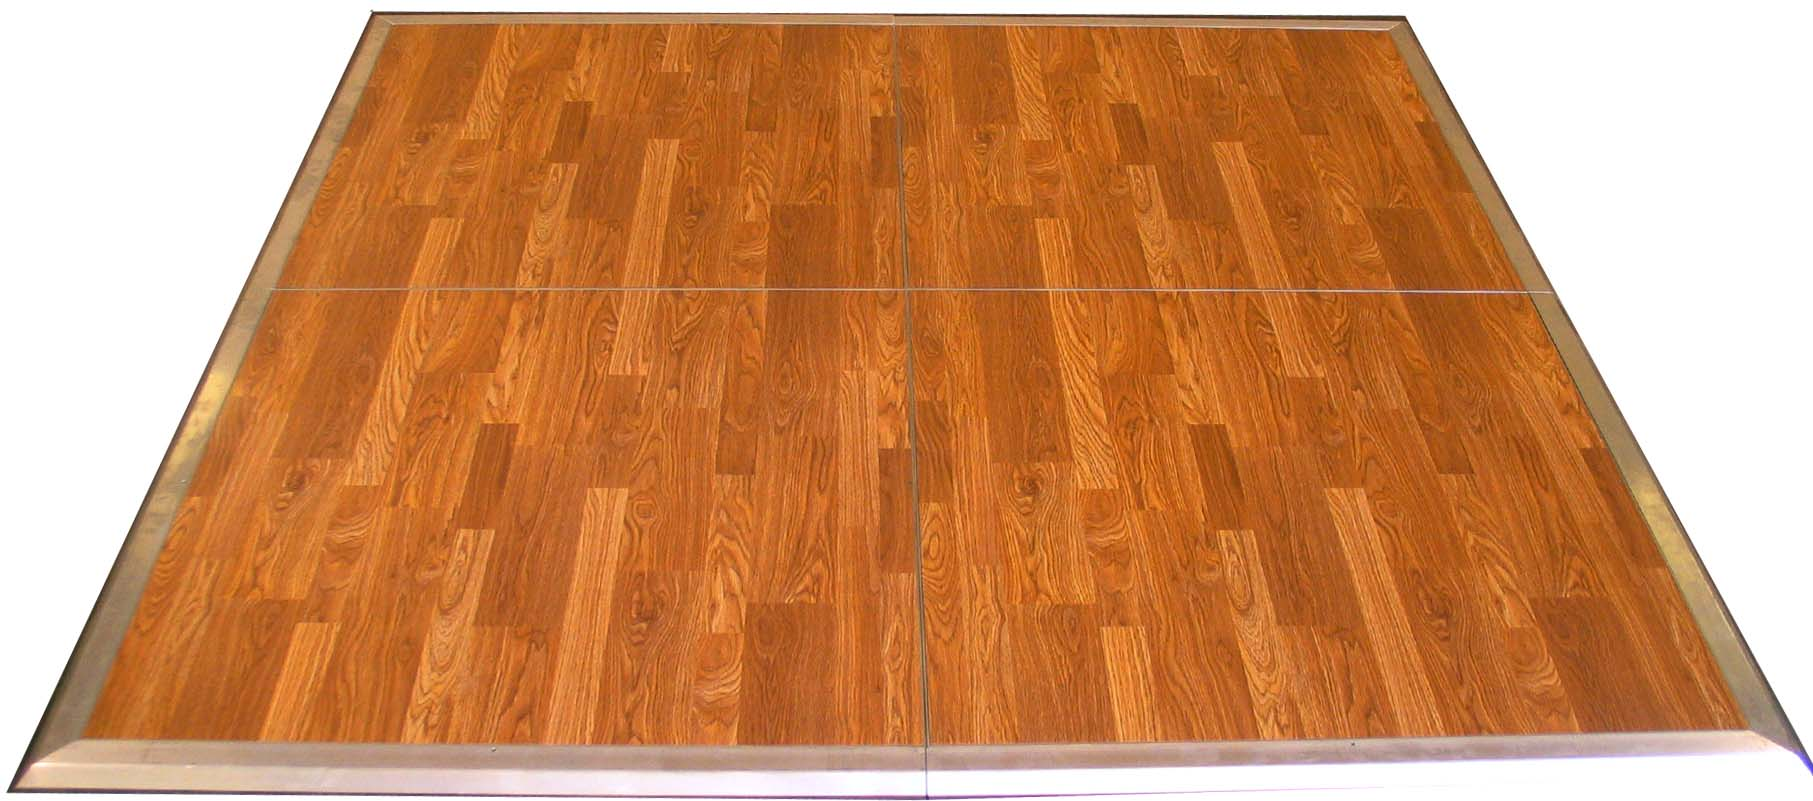 Flooring For Renters : Wood parquet dance floor for weddings and parties from